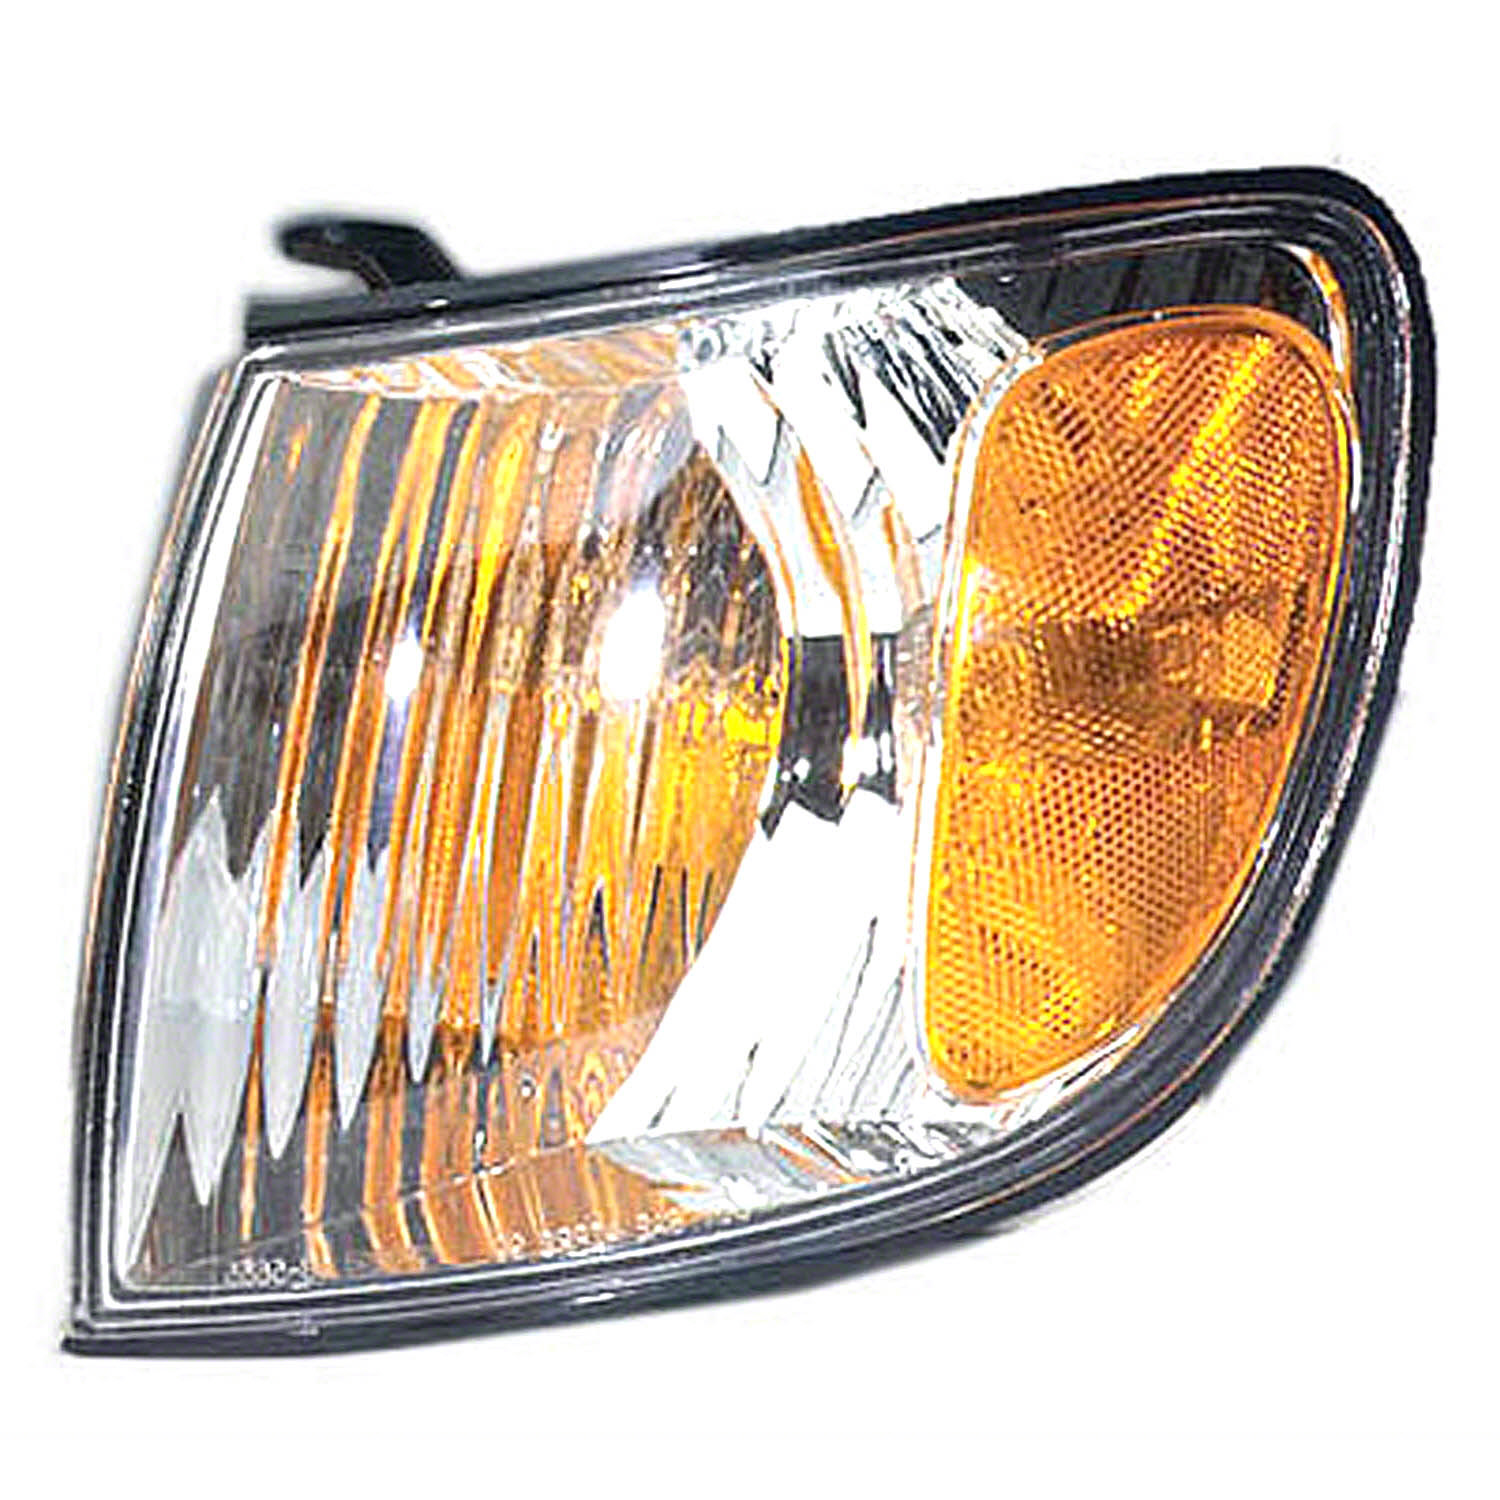 2001-2003 Toyota Sienna  Aftermarket Driver Side Front Signal Lamp Assembly 8152008020-V